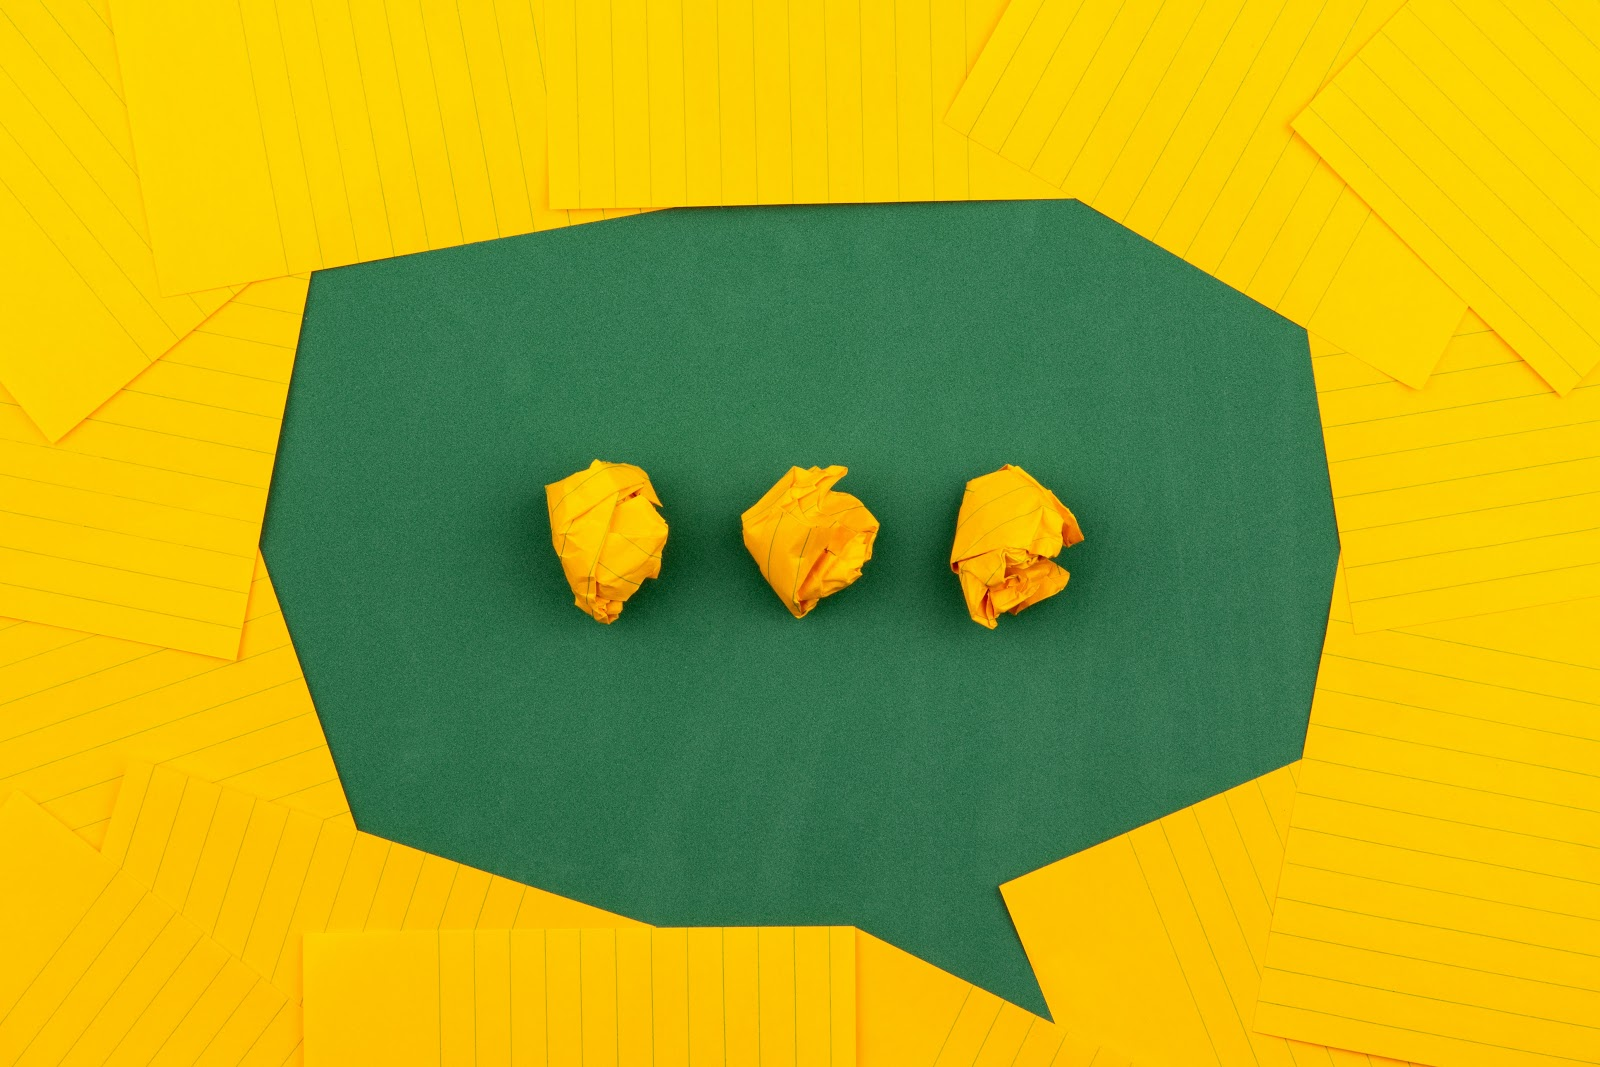 chat bubble icon made out of folded papers